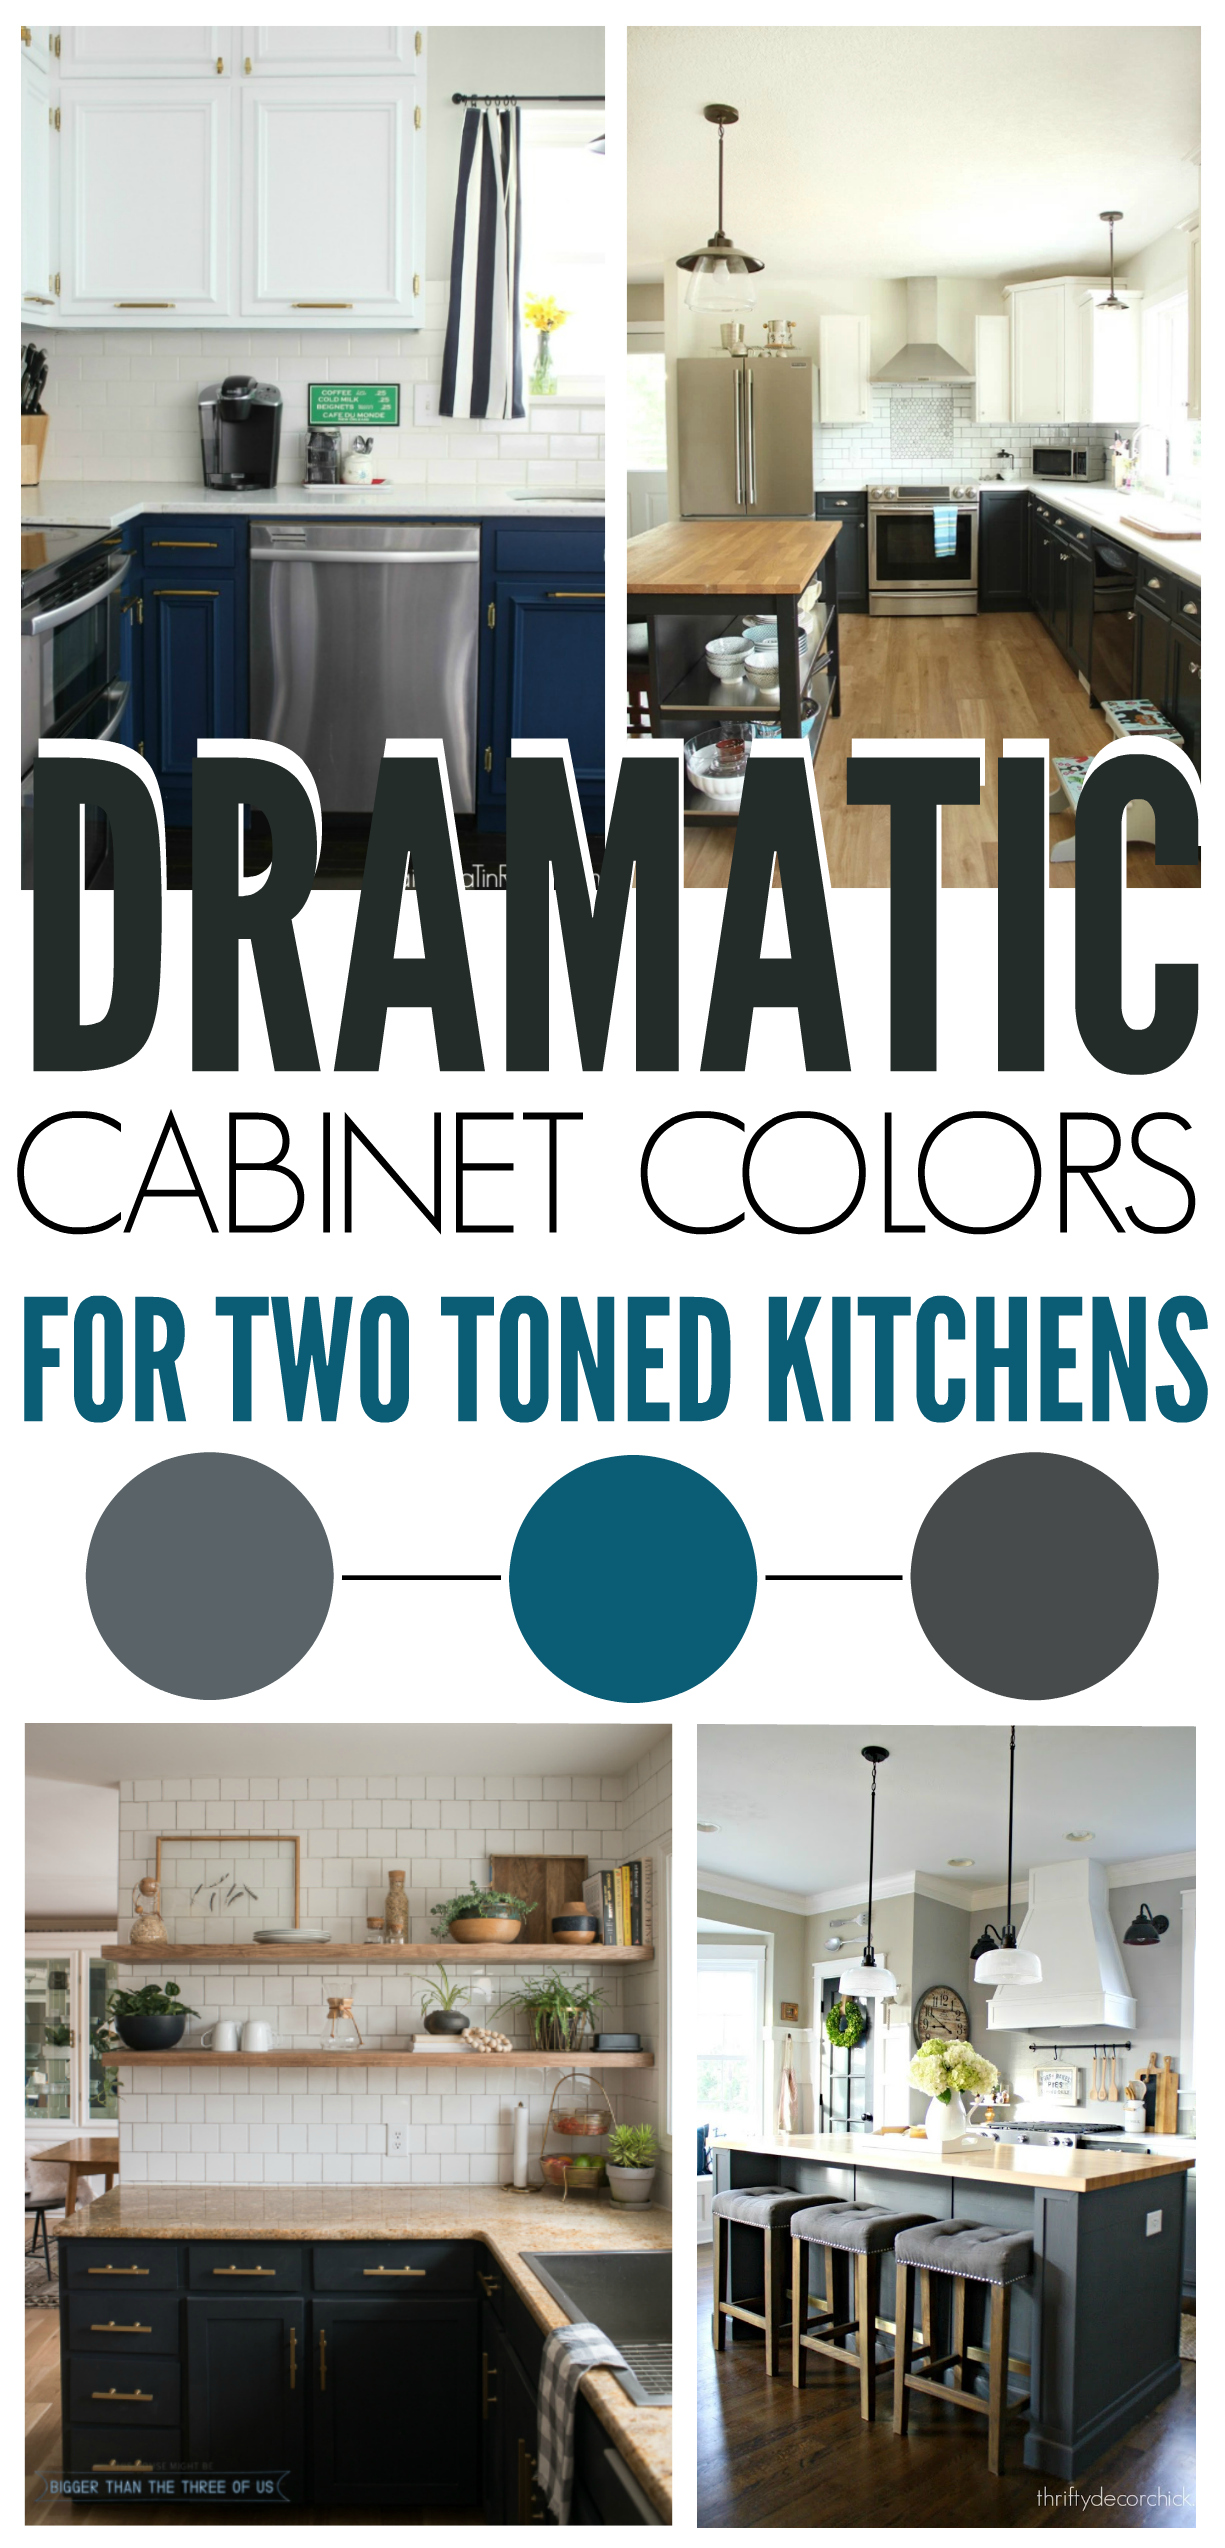 The Best Cabinet Colors For Modern Two Toned